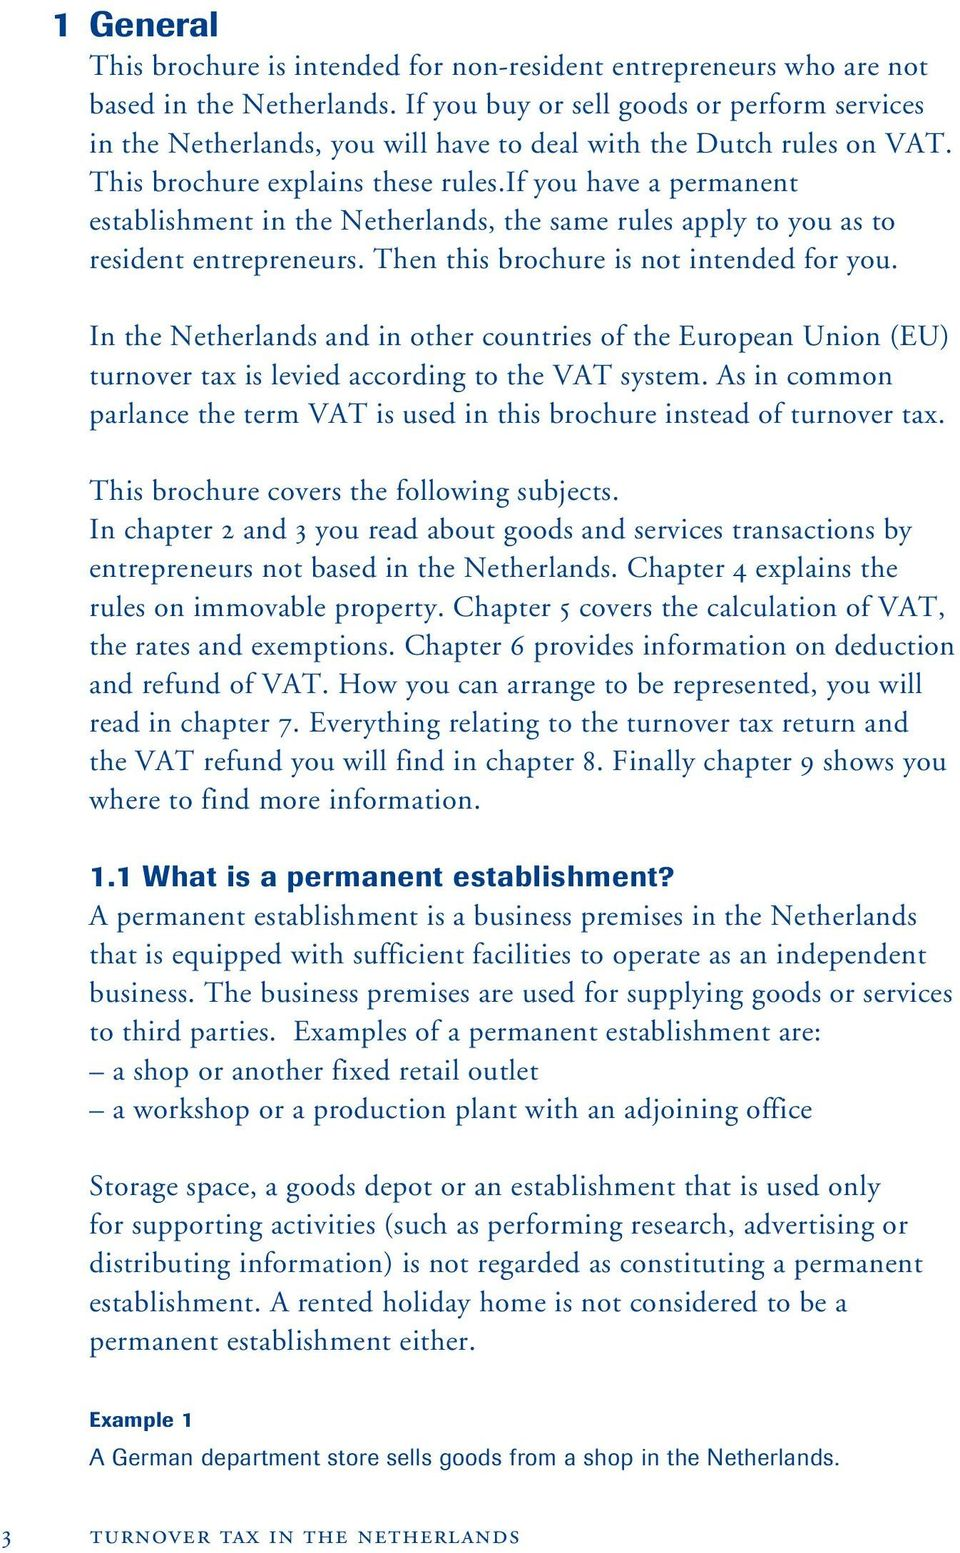 if you have a permanent establishment in the Netherlands, the same rules apply to you as to resident entrepreneurs. Then this brochure is not intended for you.